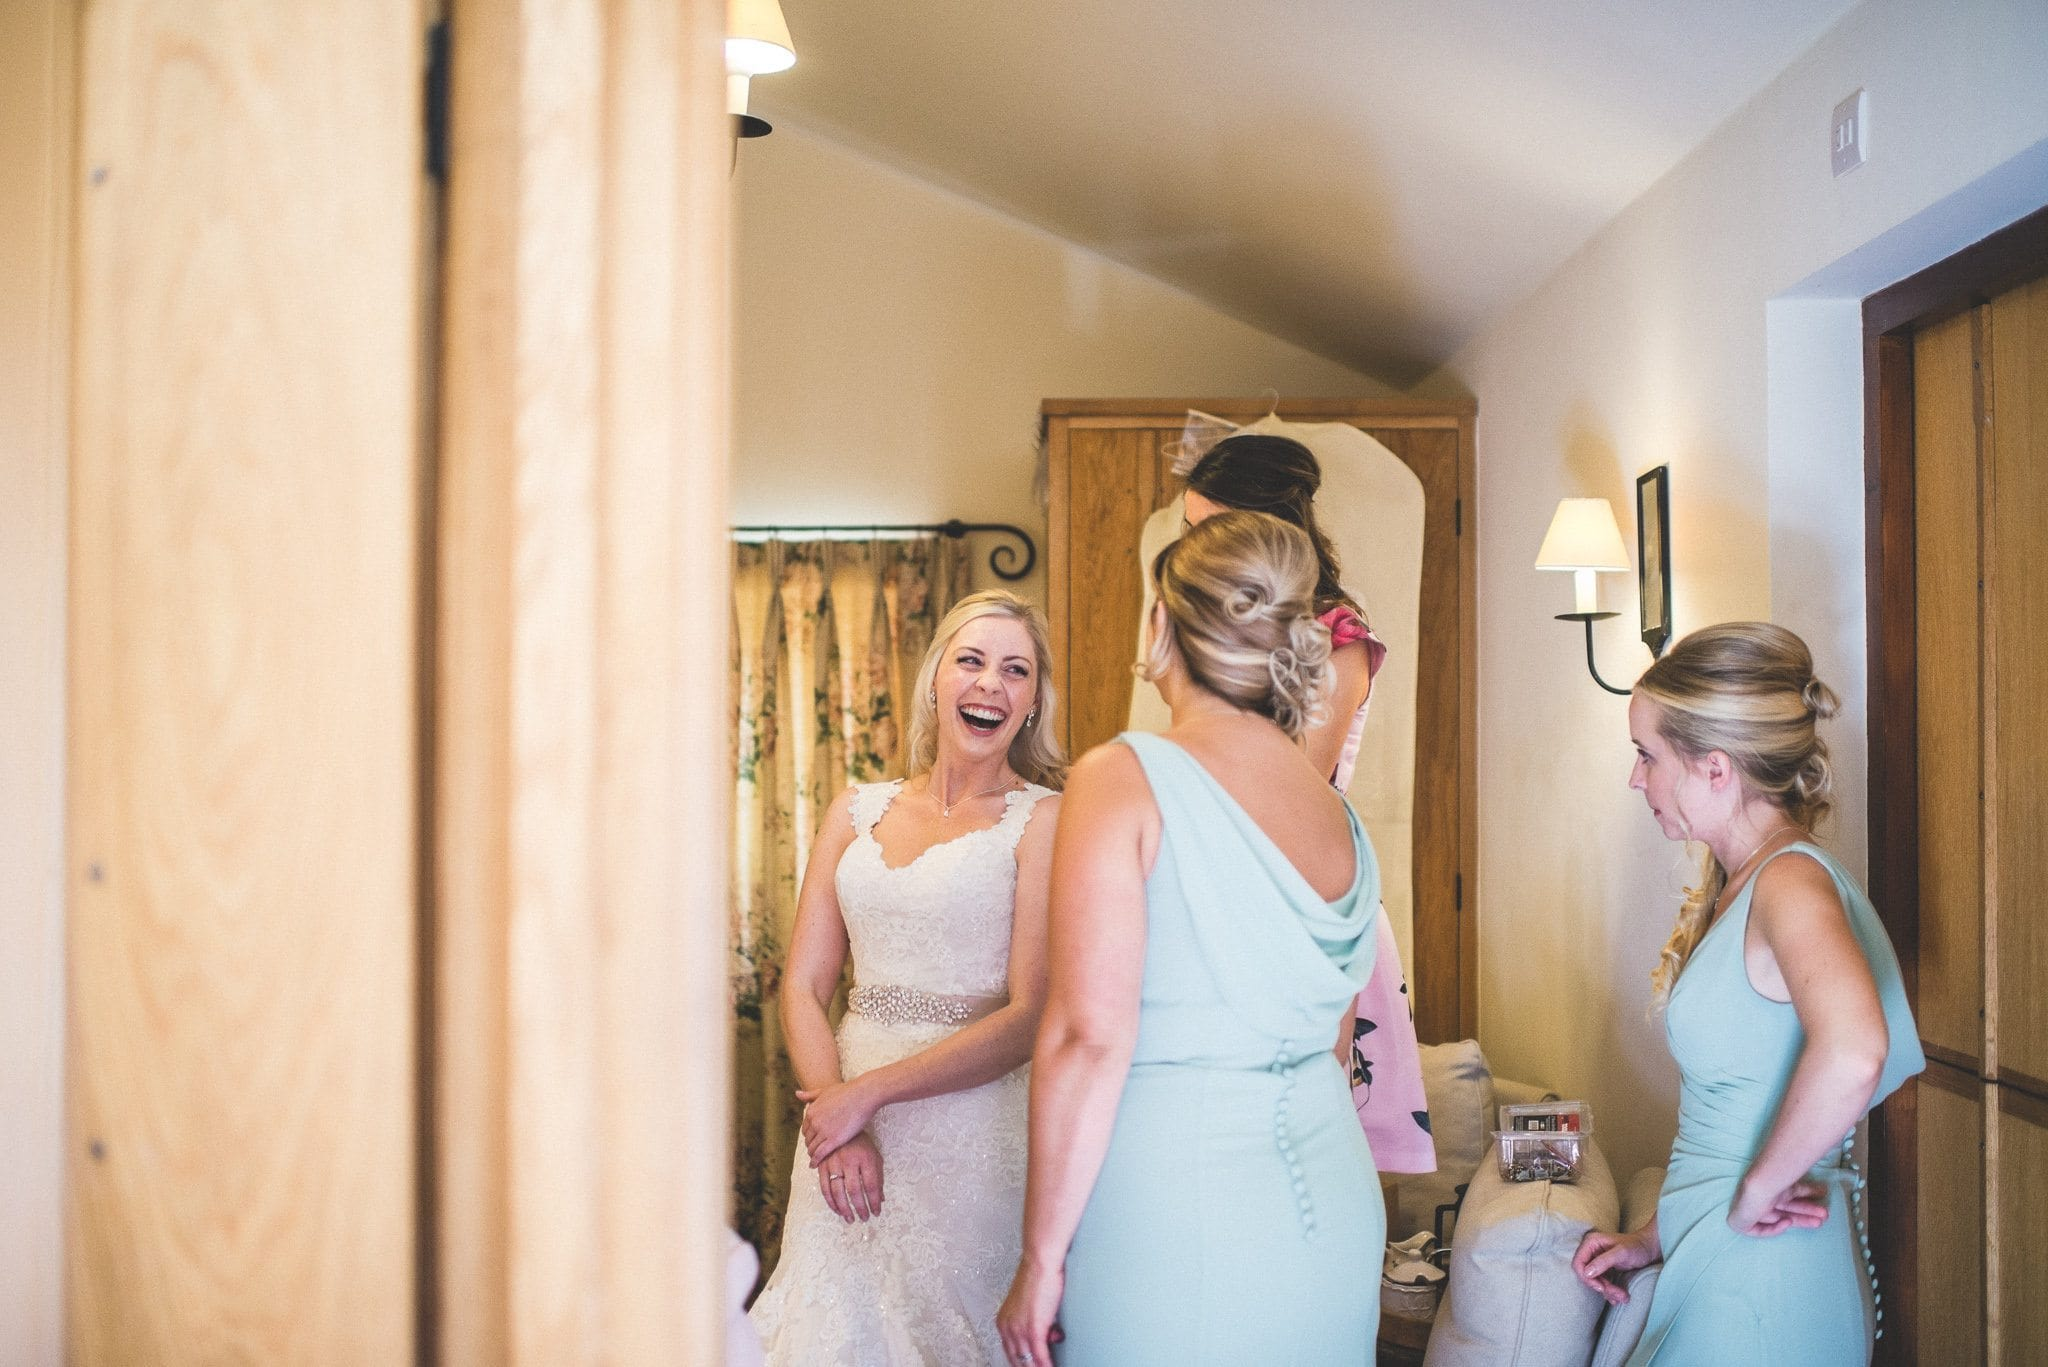 Bride Emma laughs with her bridesmaids